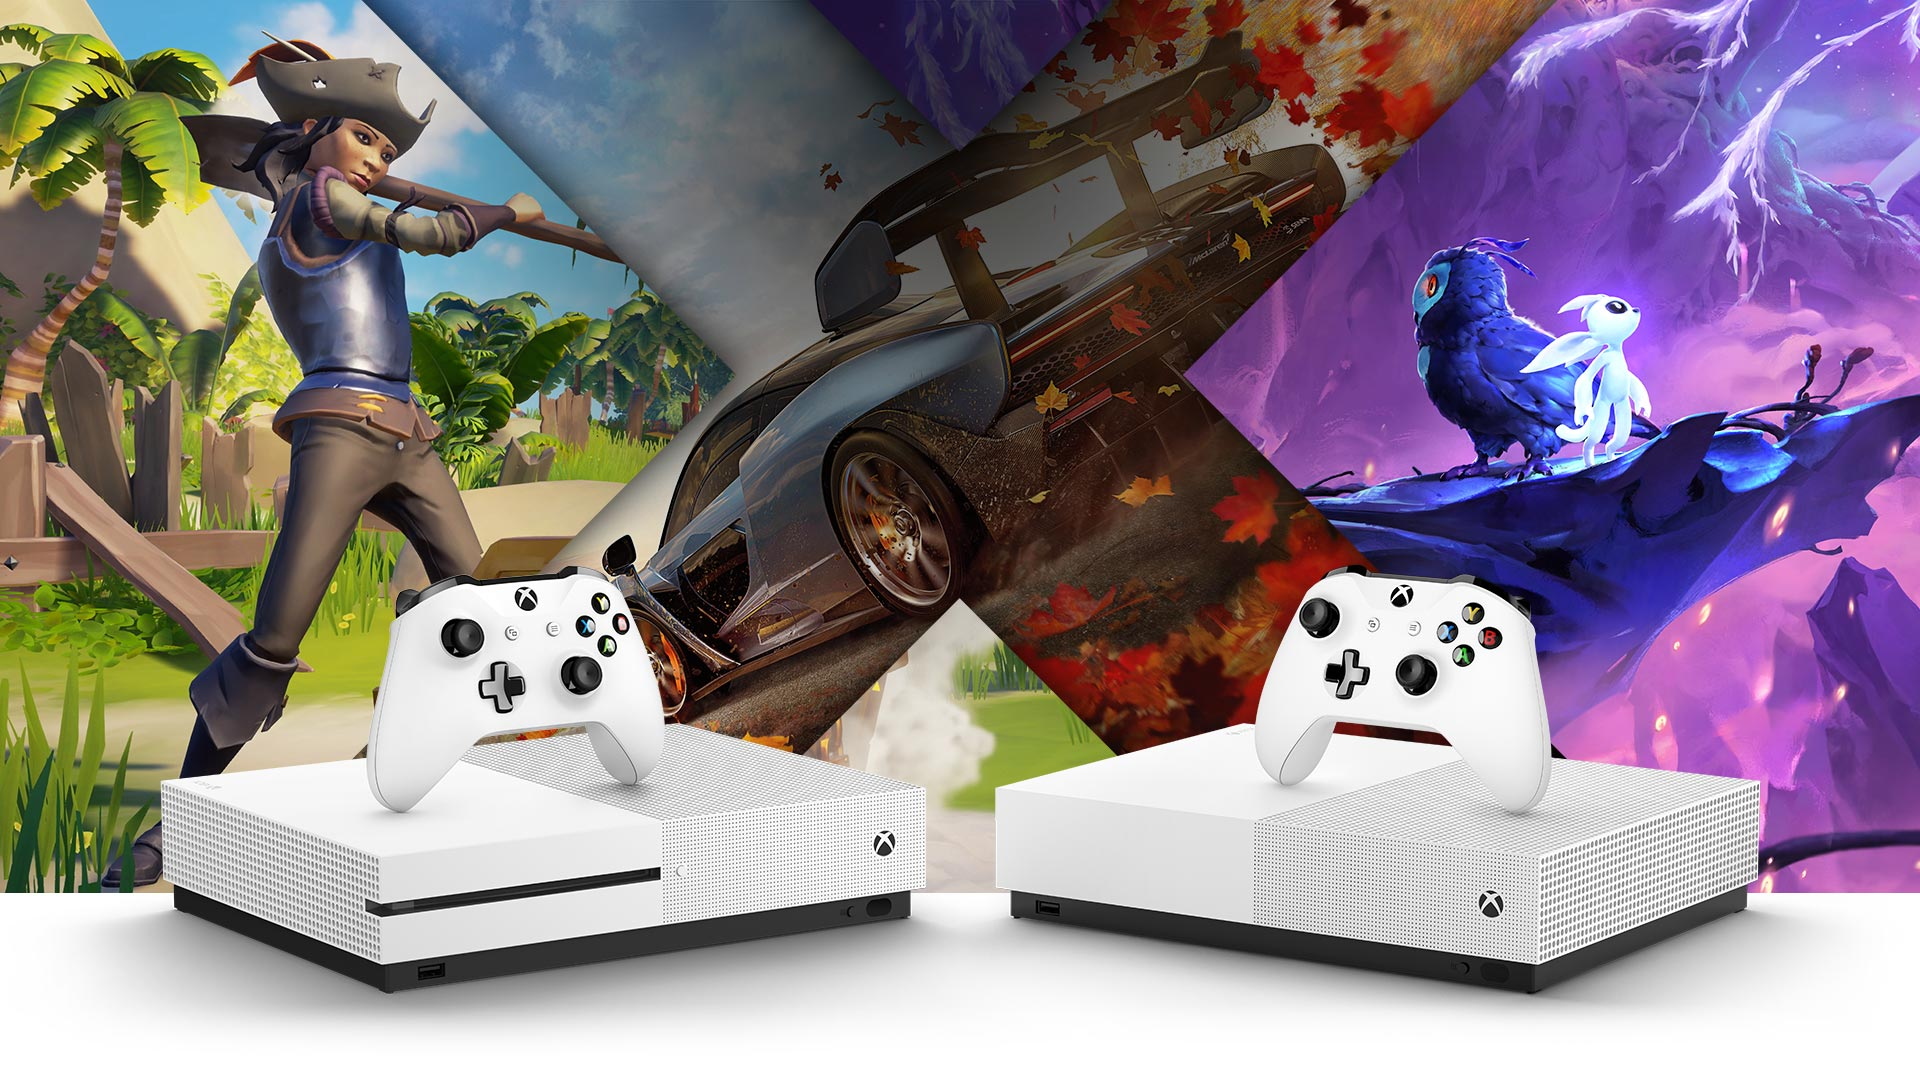 Vue avant de la Xbox One S et de la Xbox One S All Digital Edition entourée des illustrations de Sea of Thieves, Forza Horizon 4, Ori and the Will of Wisps